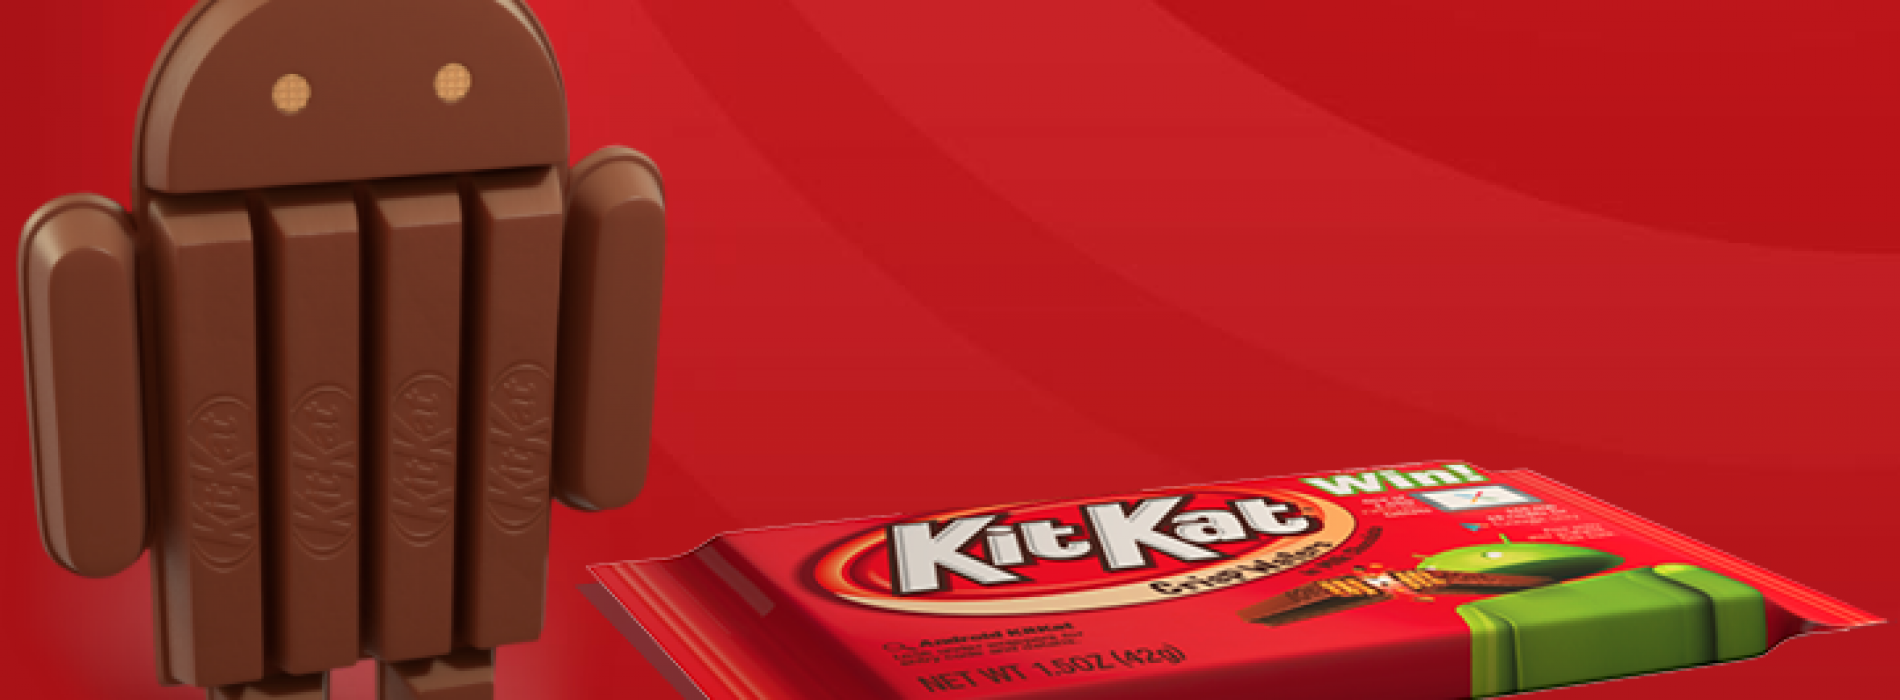 Alleged Android 4.4 KitKat details surface with rumored October 14 launch date